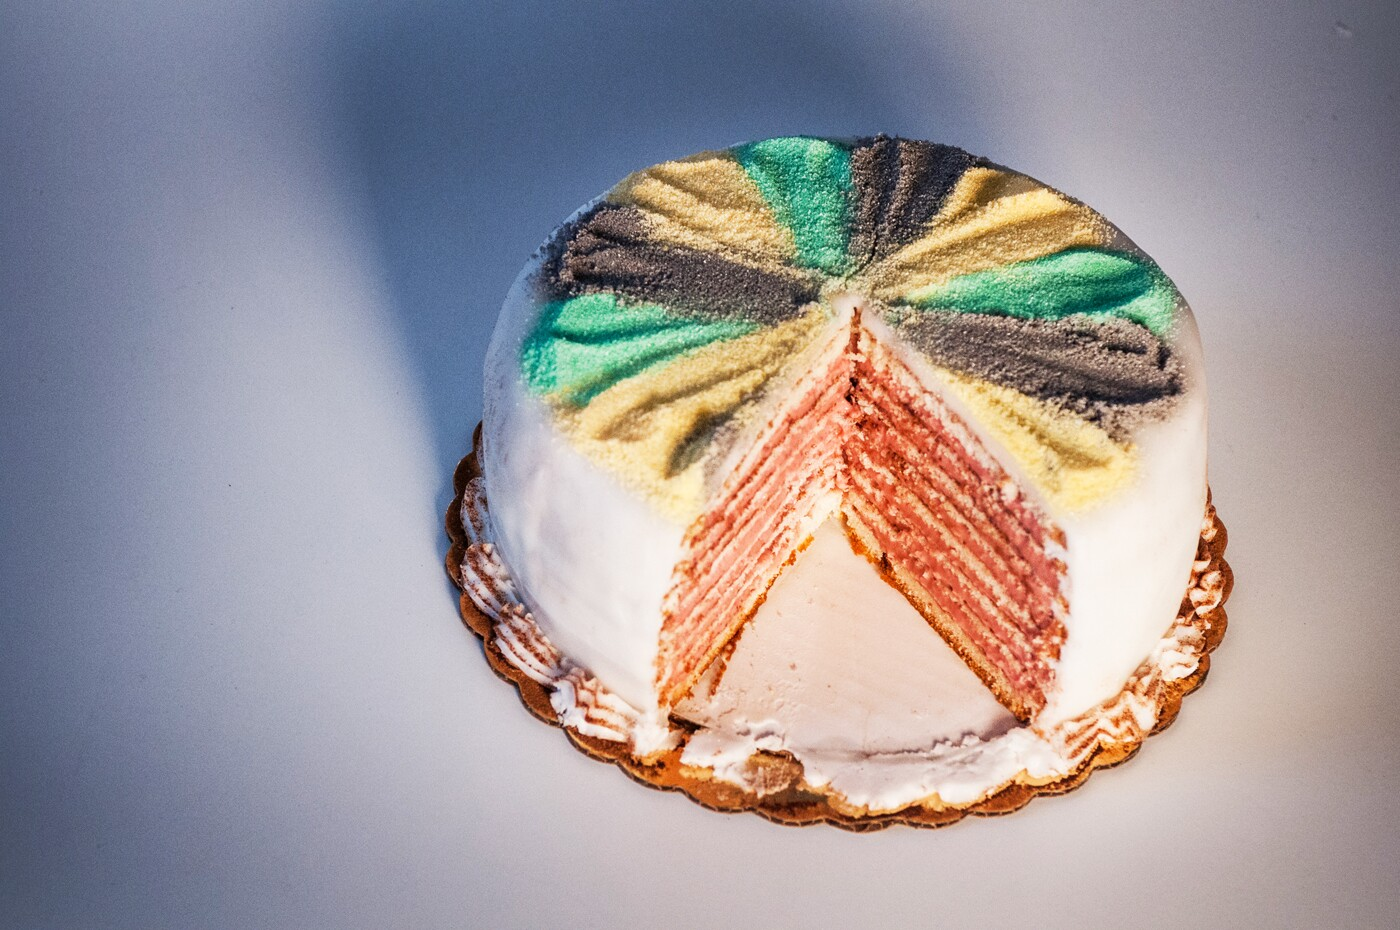 Southern Foodways Alliance: Cake by Debbie Does Doberge